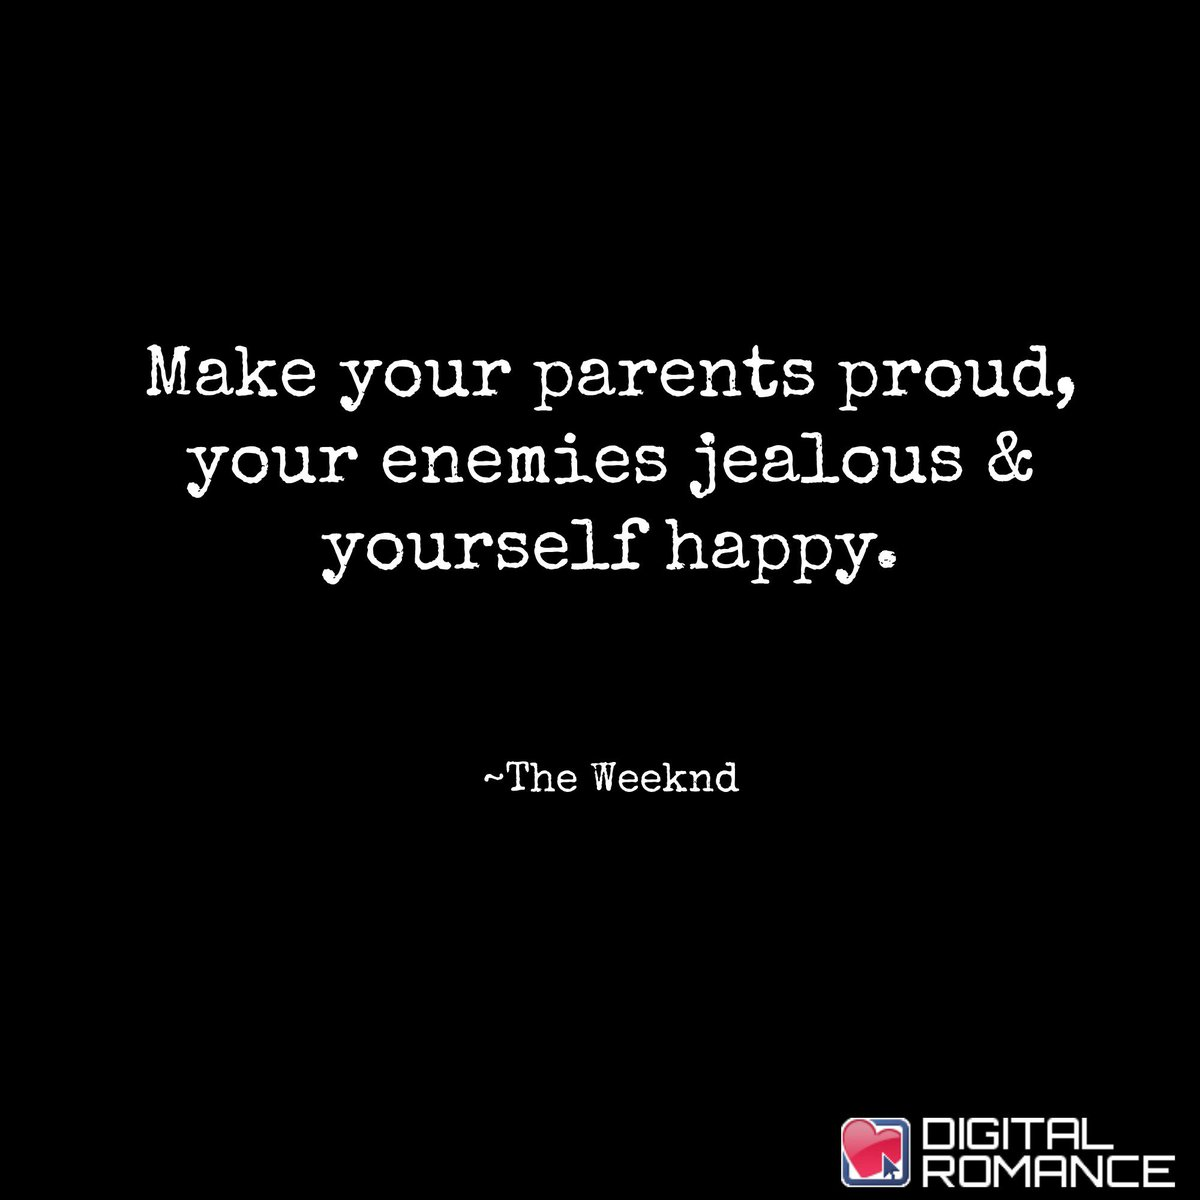 Digital Romance Inc On Twitter Make Your Parents Proud Your